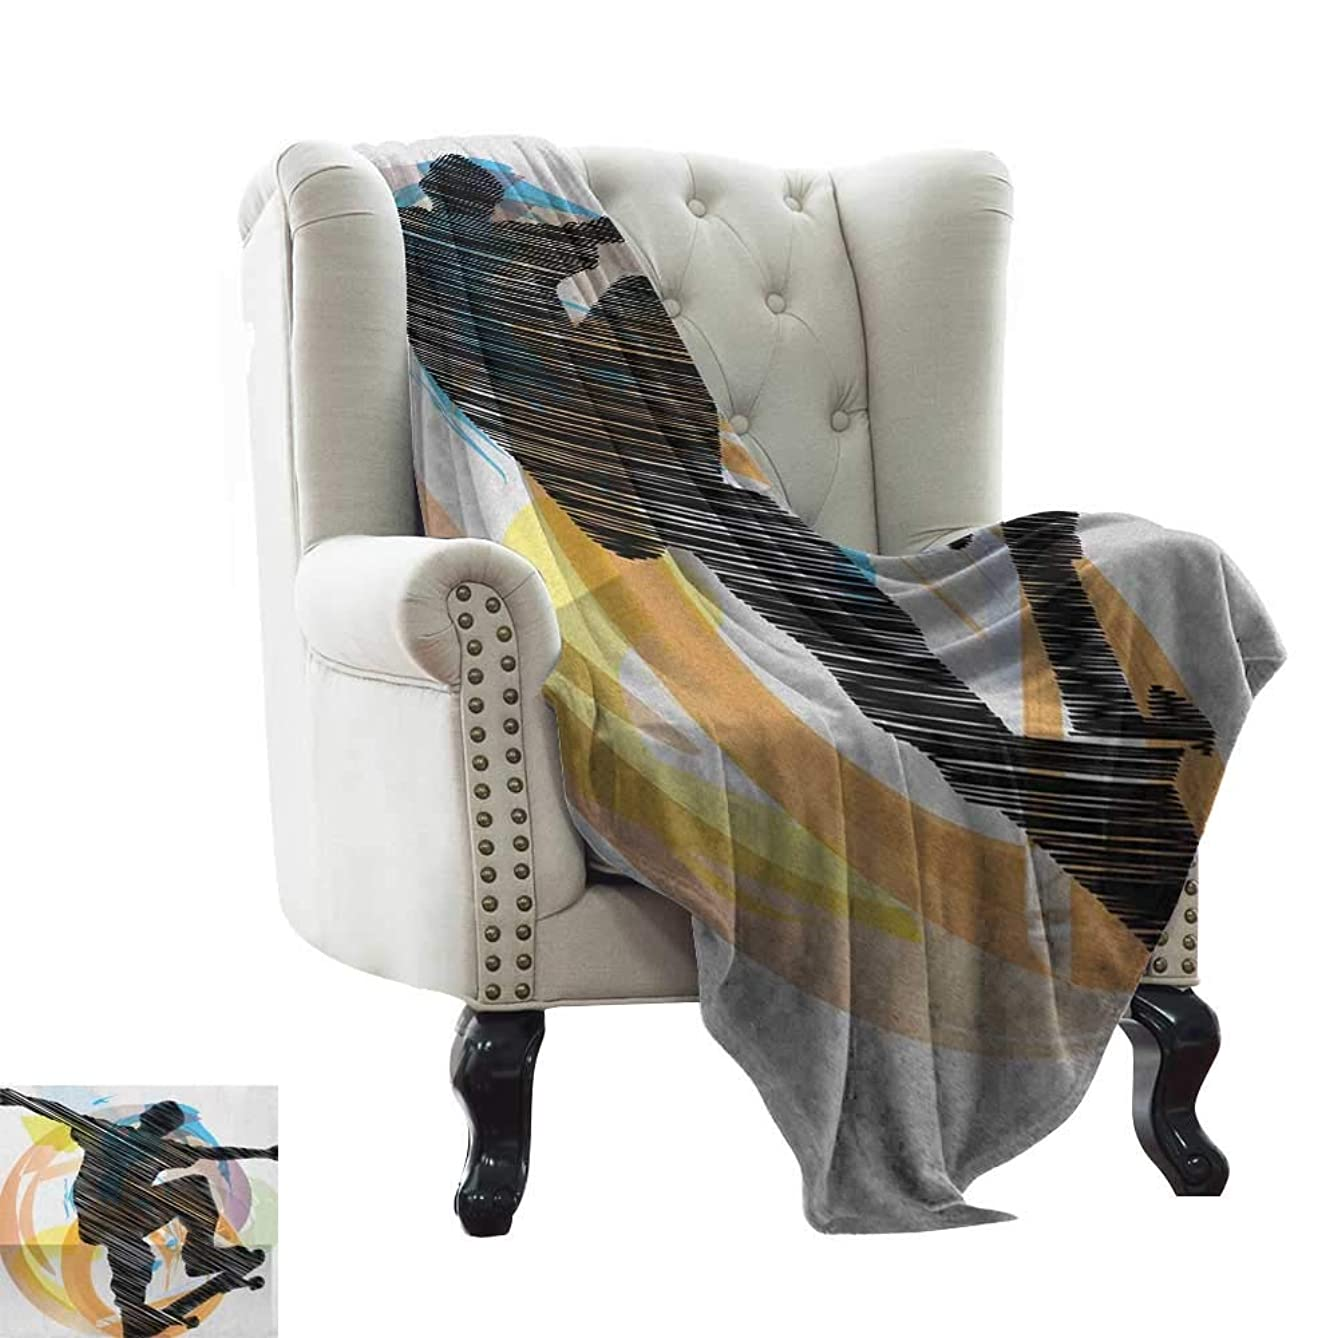 LsWOW Summer Blanket Teen Room,Abstract Grunge Stylized Sketch Art of A Skater Young Boy Exotic Sports Graphic, Multicolor Blanket for Sofa Couch TV Bed All Season 60